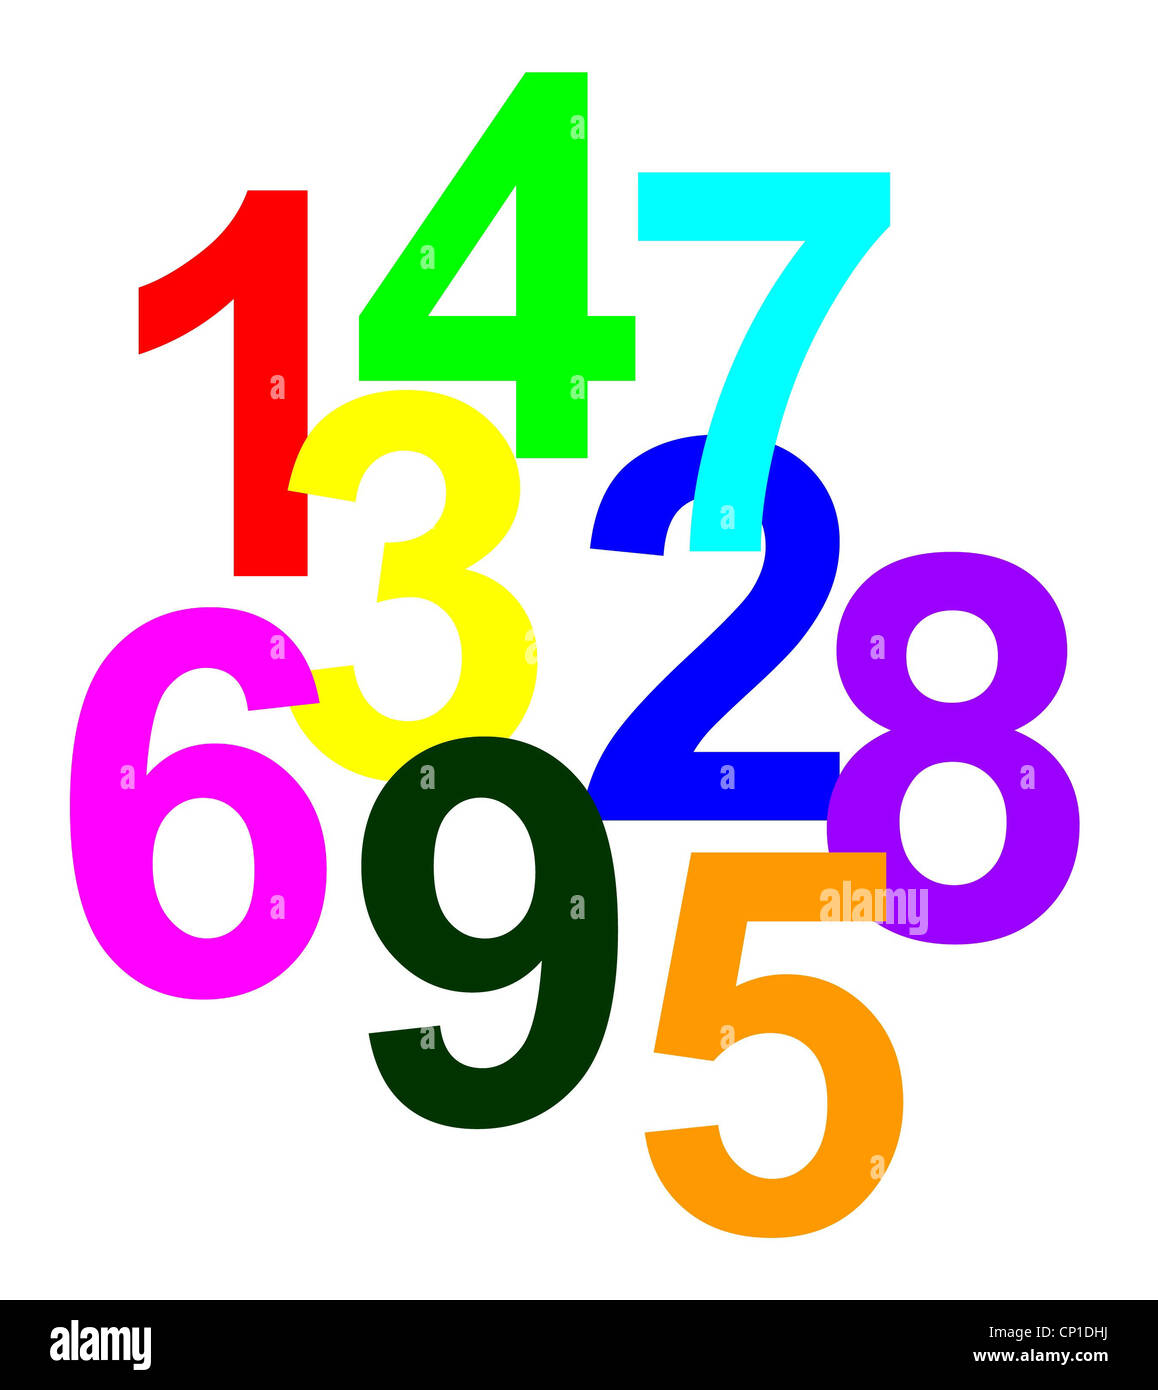 Graphic Of The Numbers 1 To 9 Stock Photos & Graphic Of The Numbers